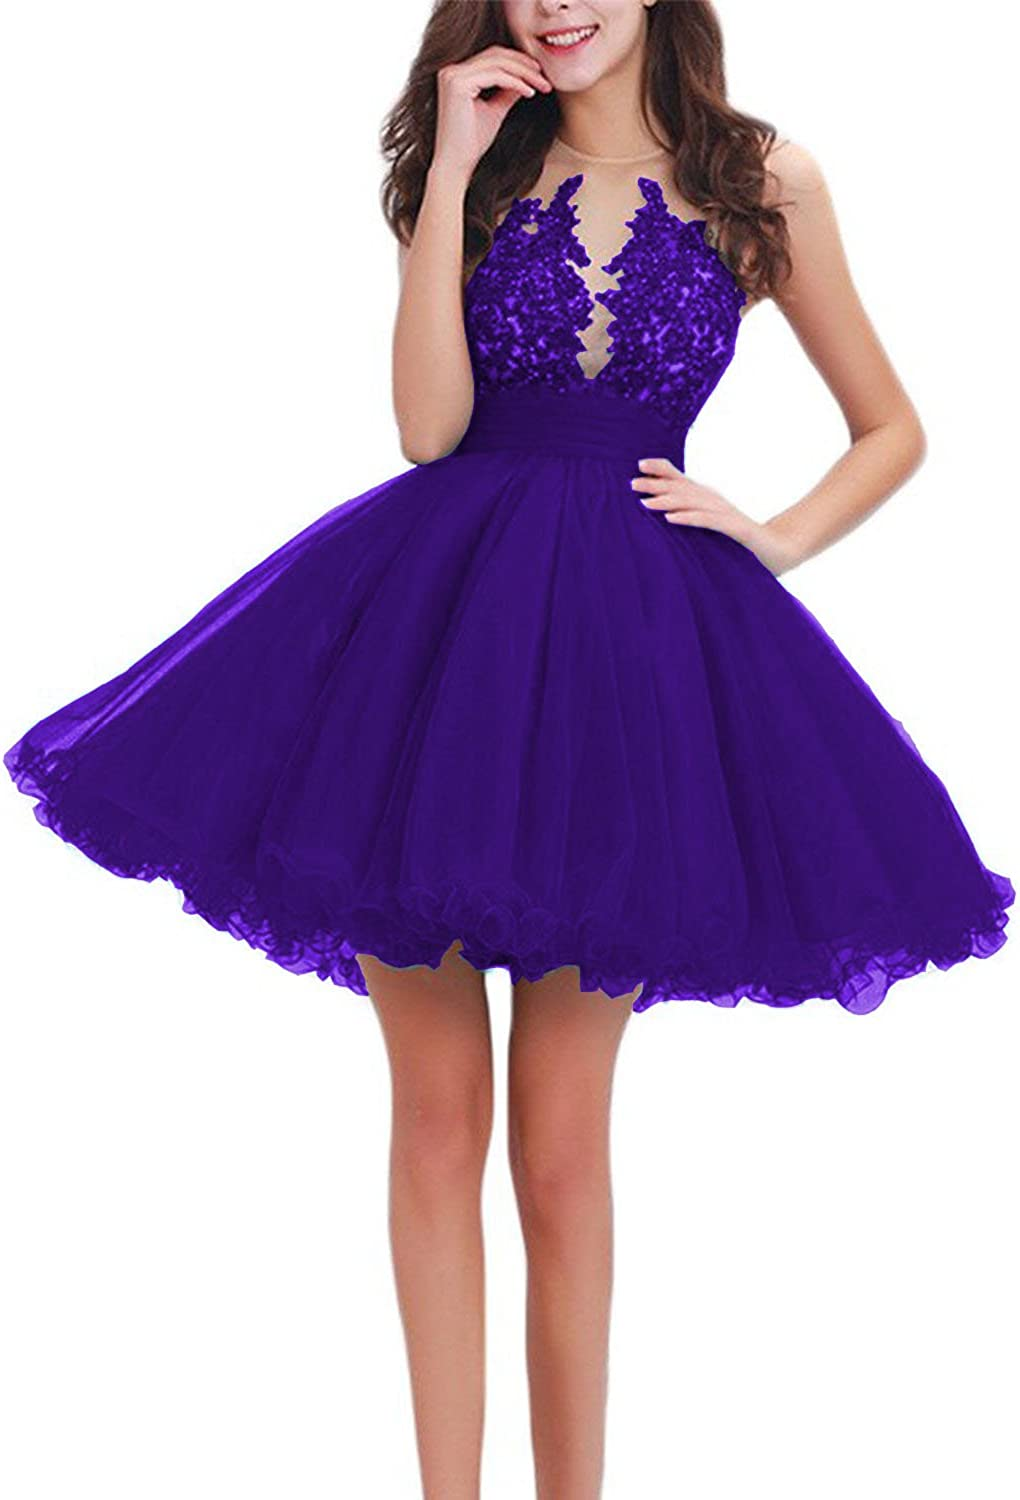 Scarisee Womens Ball Gown Beaded Appliqued Homecoming Prom Party Dress ShortSA27